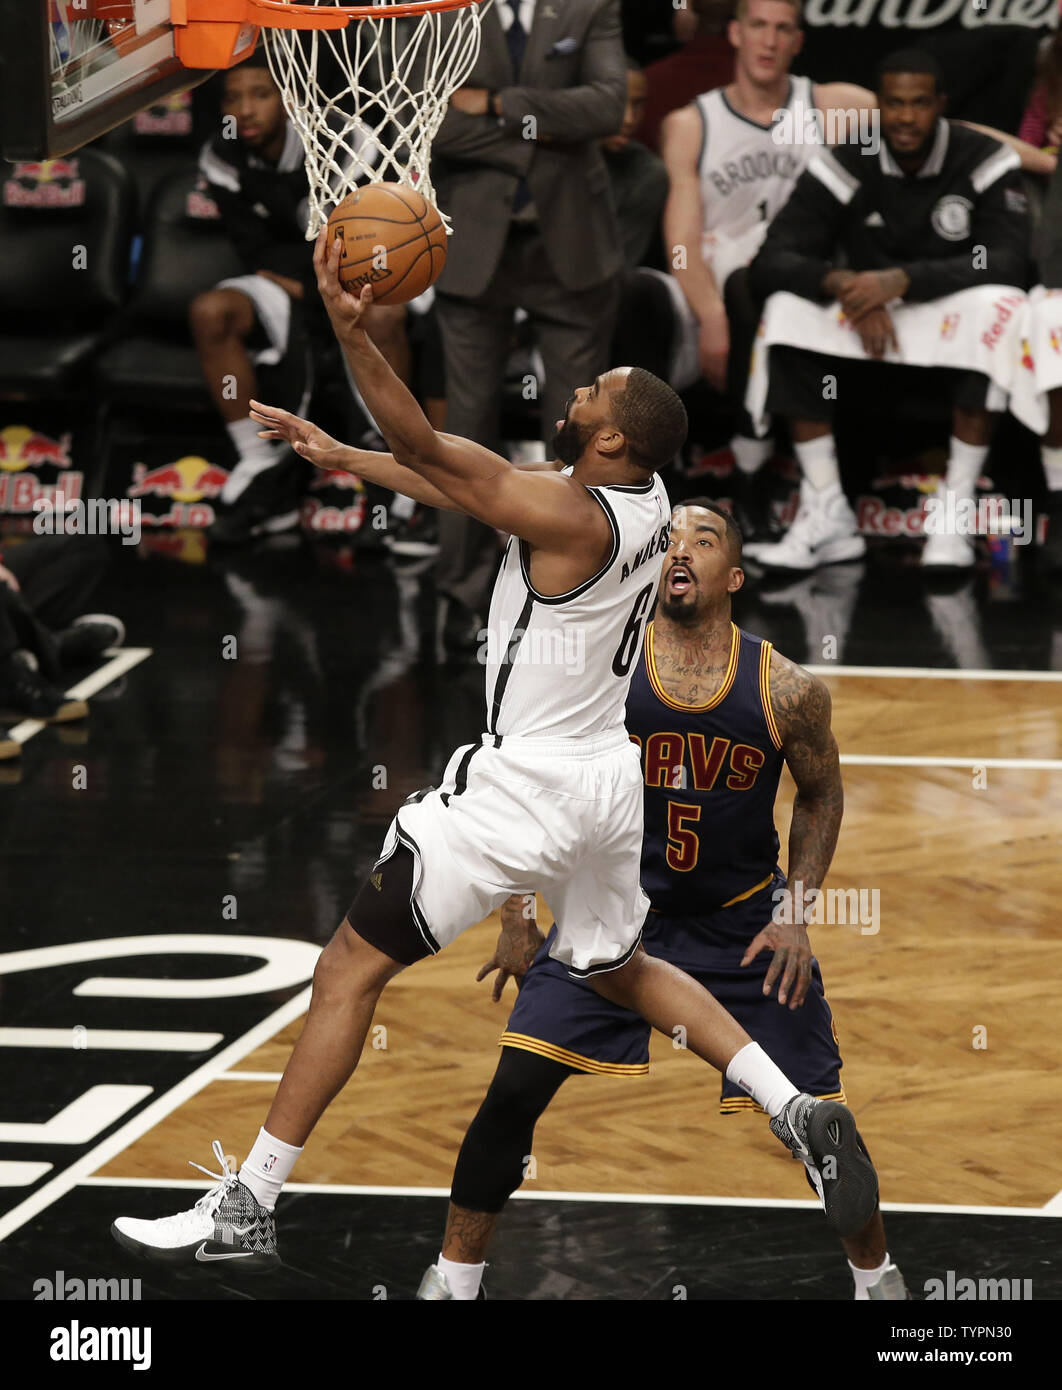 Brooklyn Nets Alan Anderson drives to the basket in in the first half against the Cleveland Cavaliers at Barclays Center in New York City on March 27, 2015. The Nets defeated the Cavaliers 106-98.     UPI/John Angelillo - Stock Image